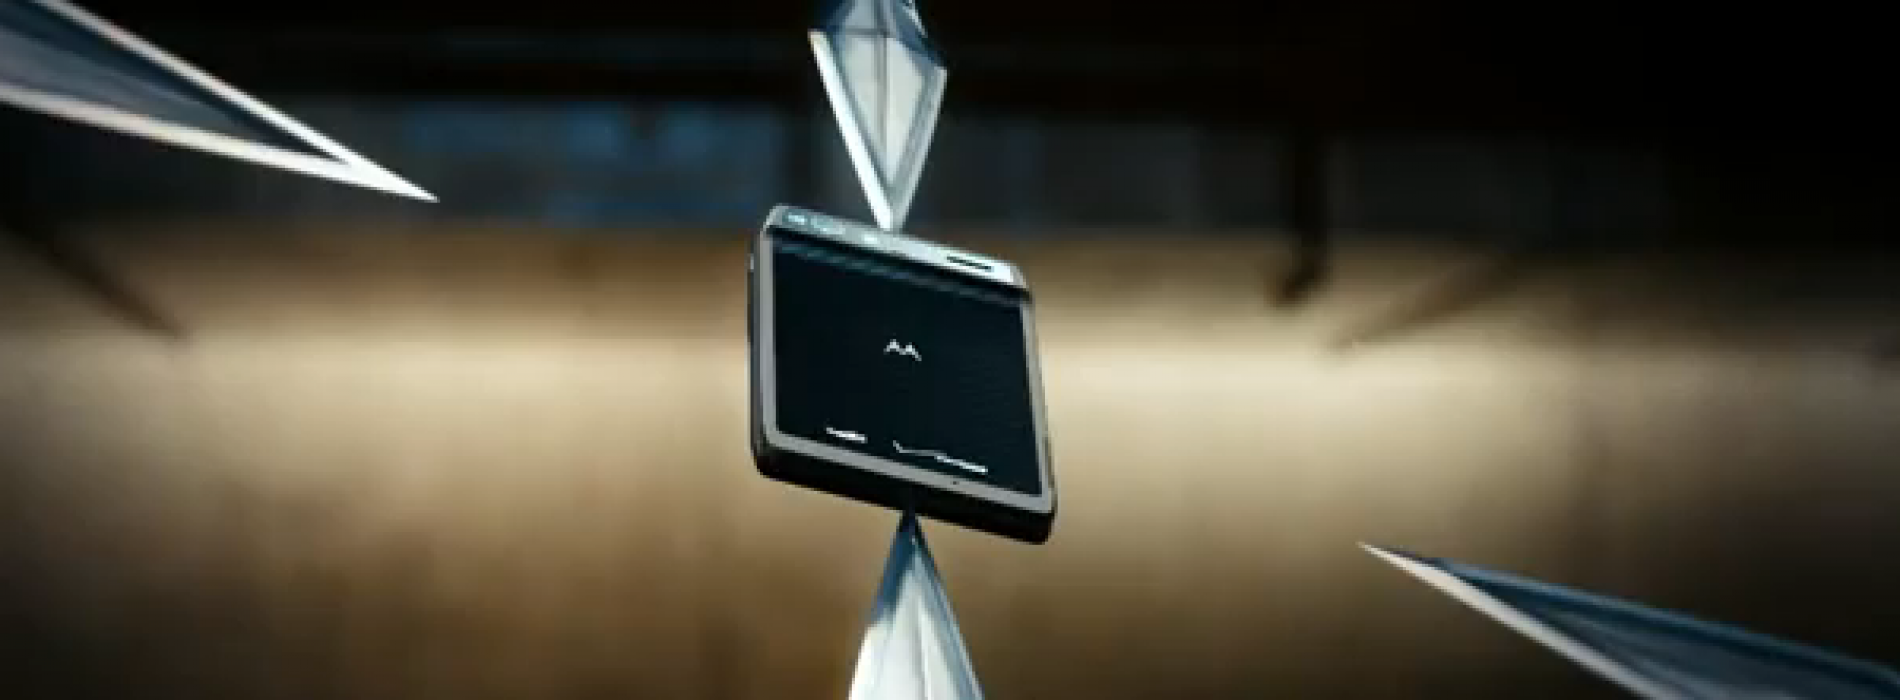 "Droid Razr ""Strong Blade"" [VIDEO]"